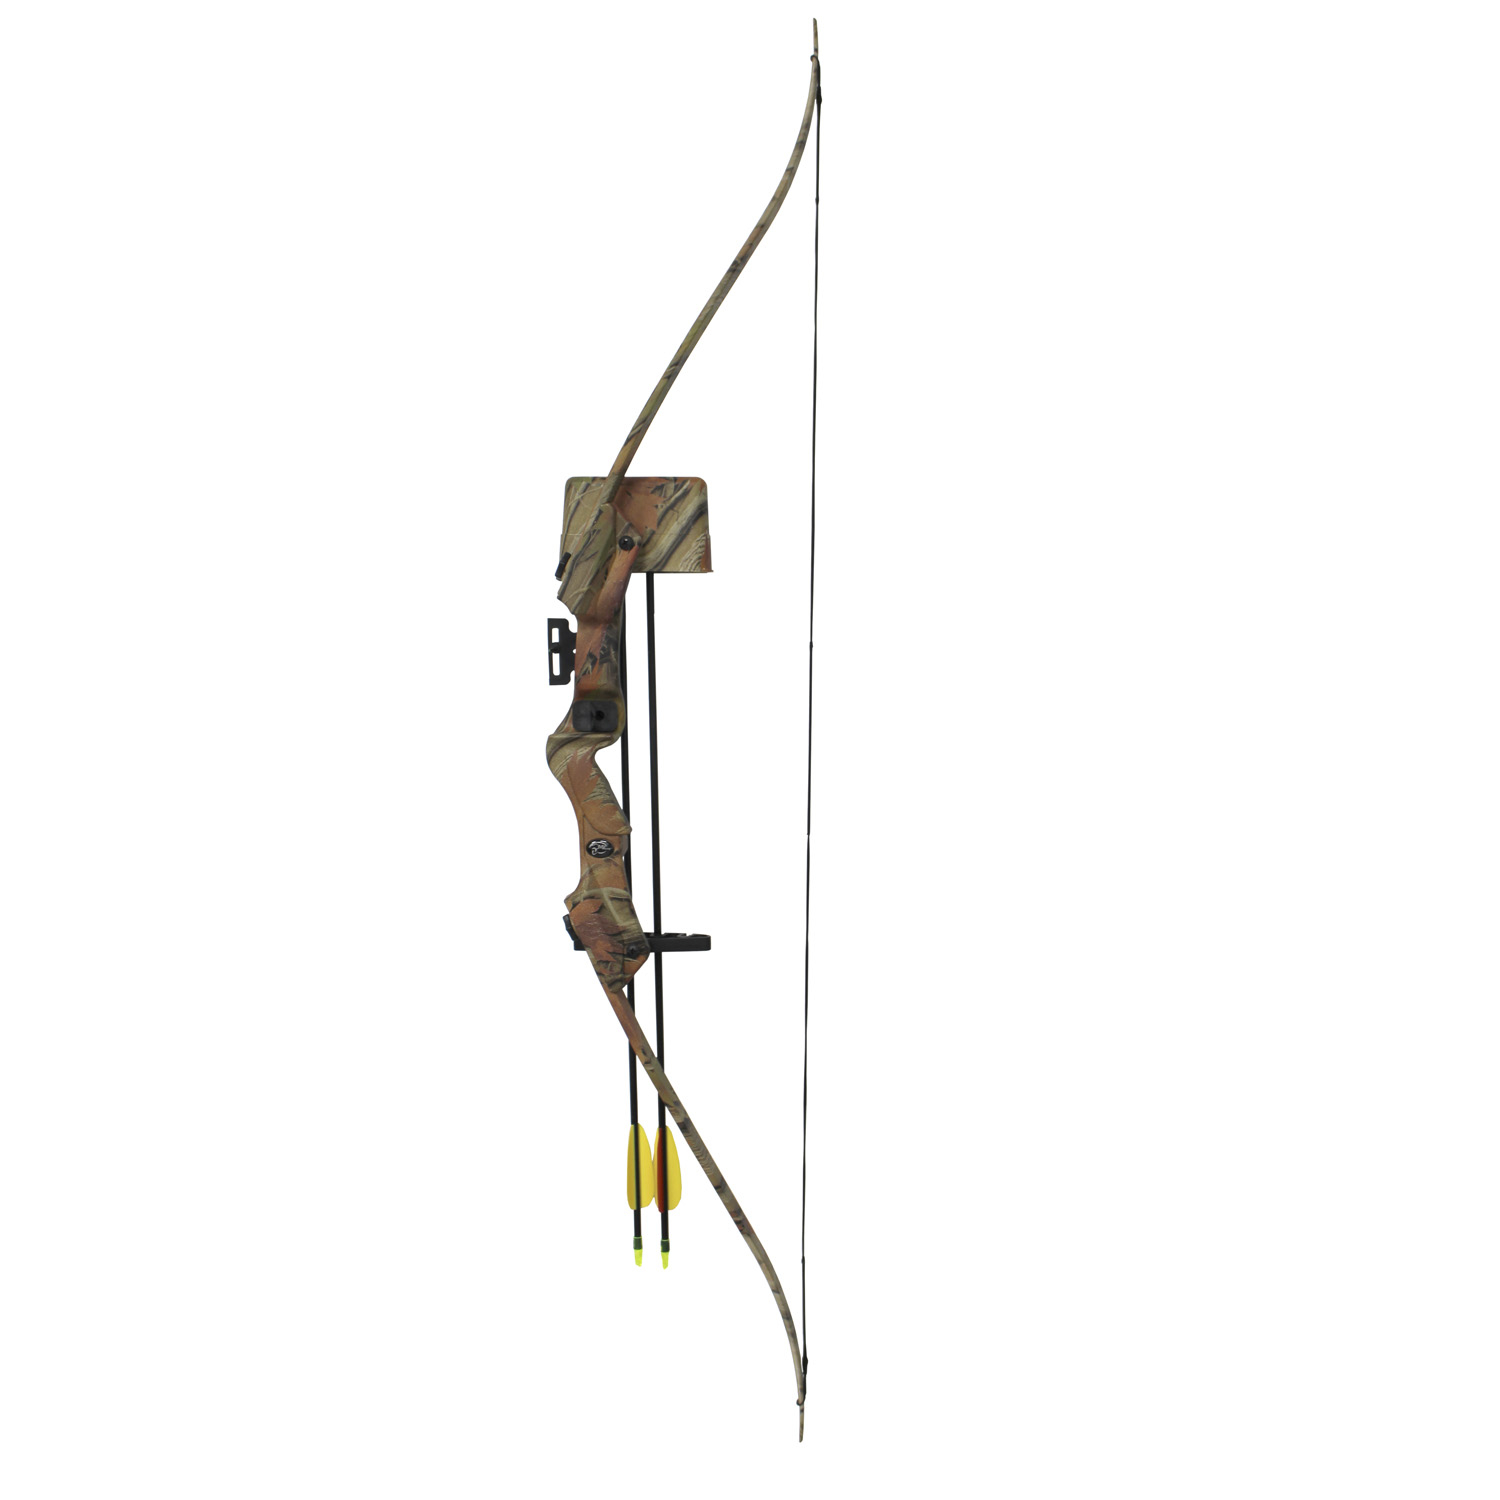 black color Hellbow Set Recurve Bow 20 lbs and 85 FPS for right-handed an ideal set for the young archer